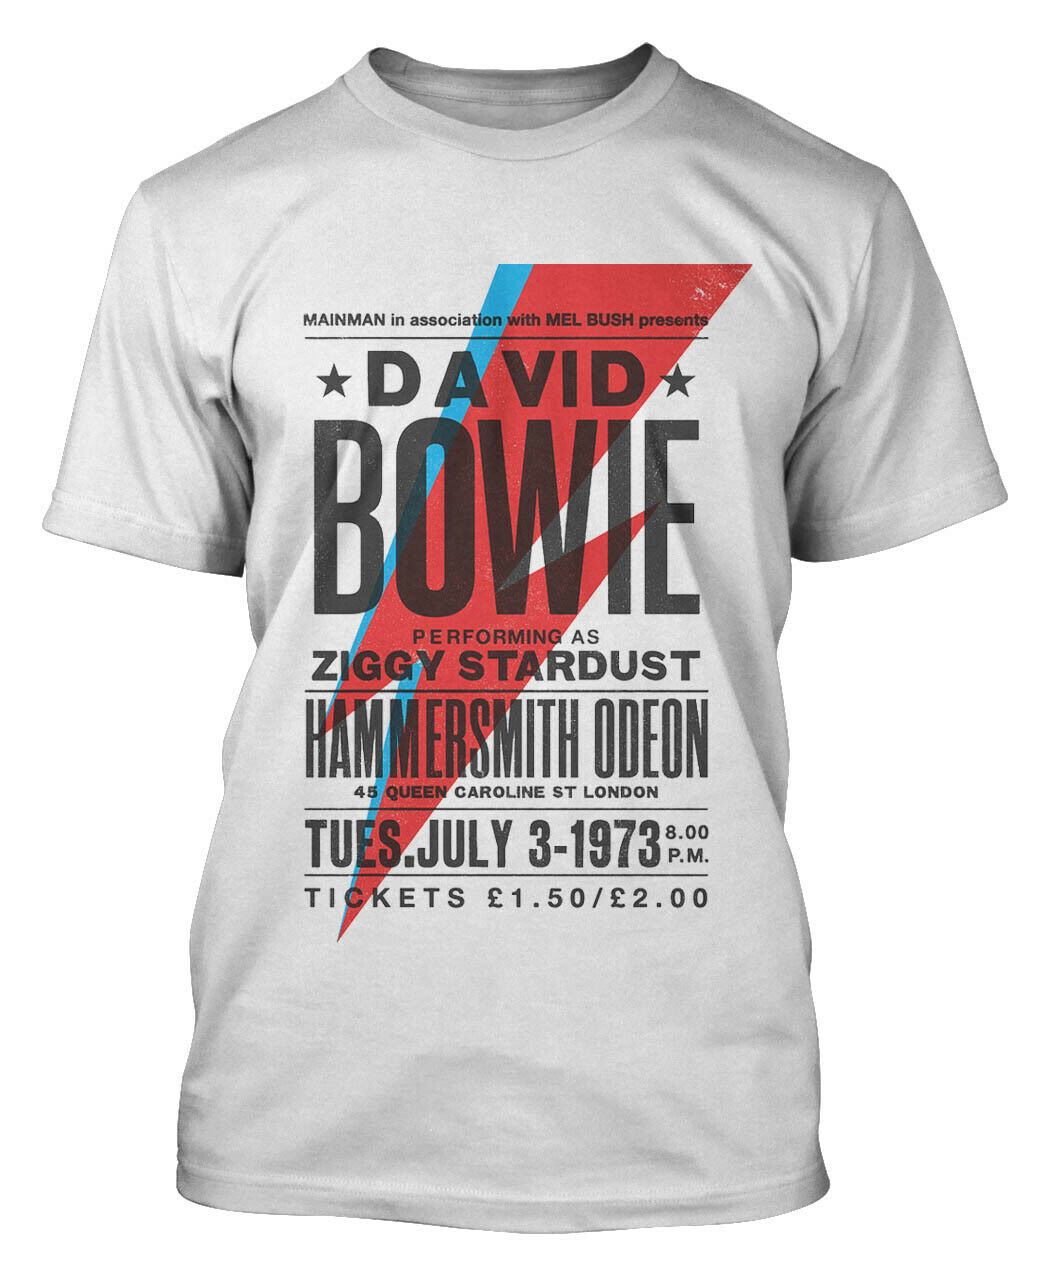 DAVID BOWIE T-SHIRT POSTER